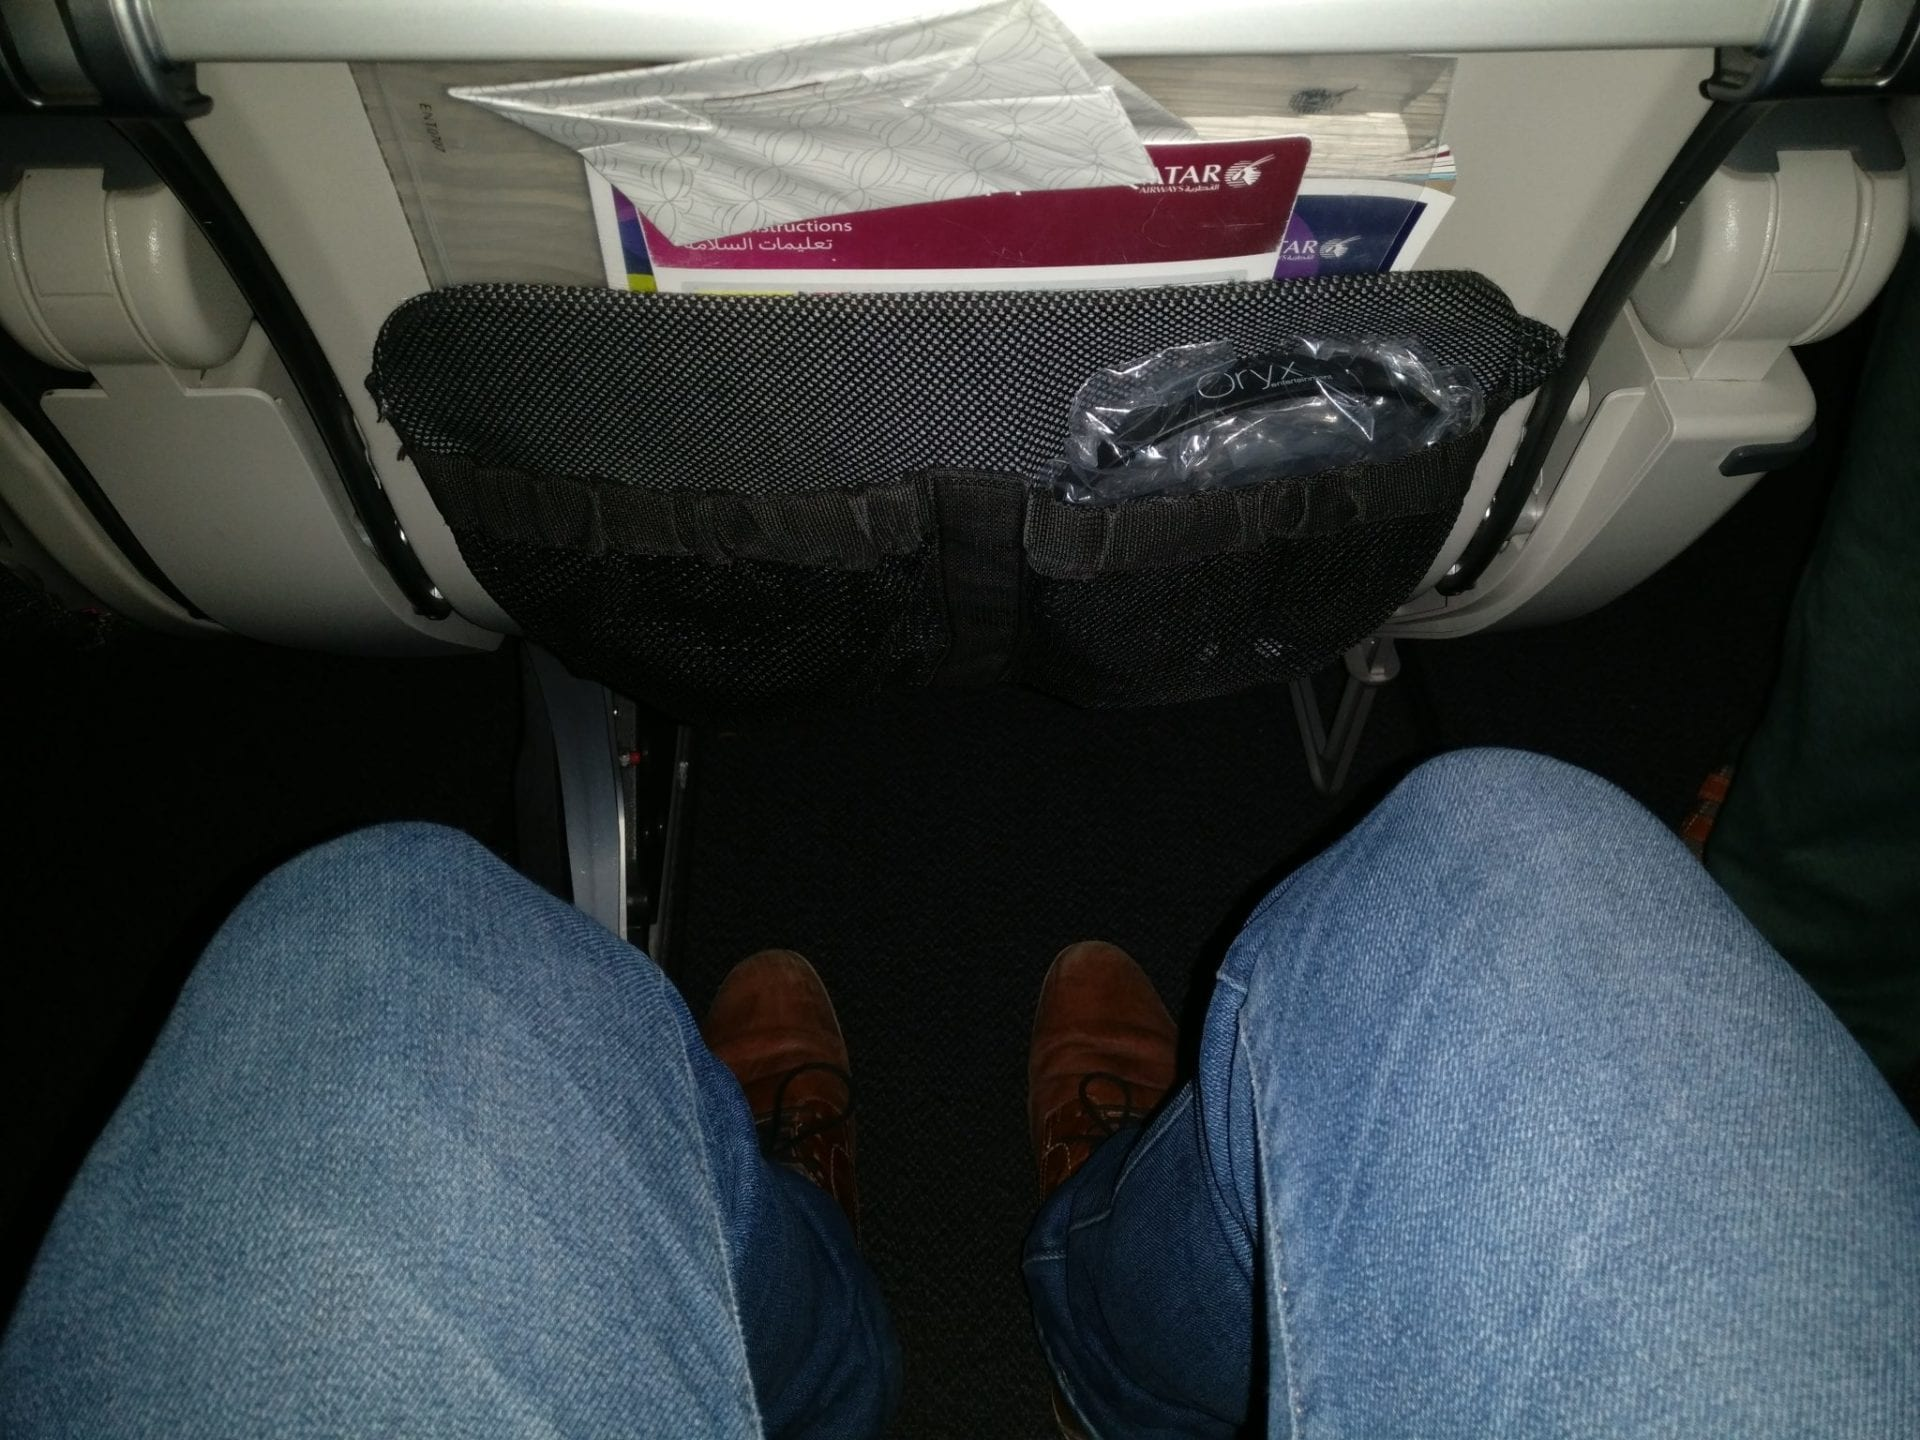 Qatar Airways Economy Class Boeing 777 Seat Pitch